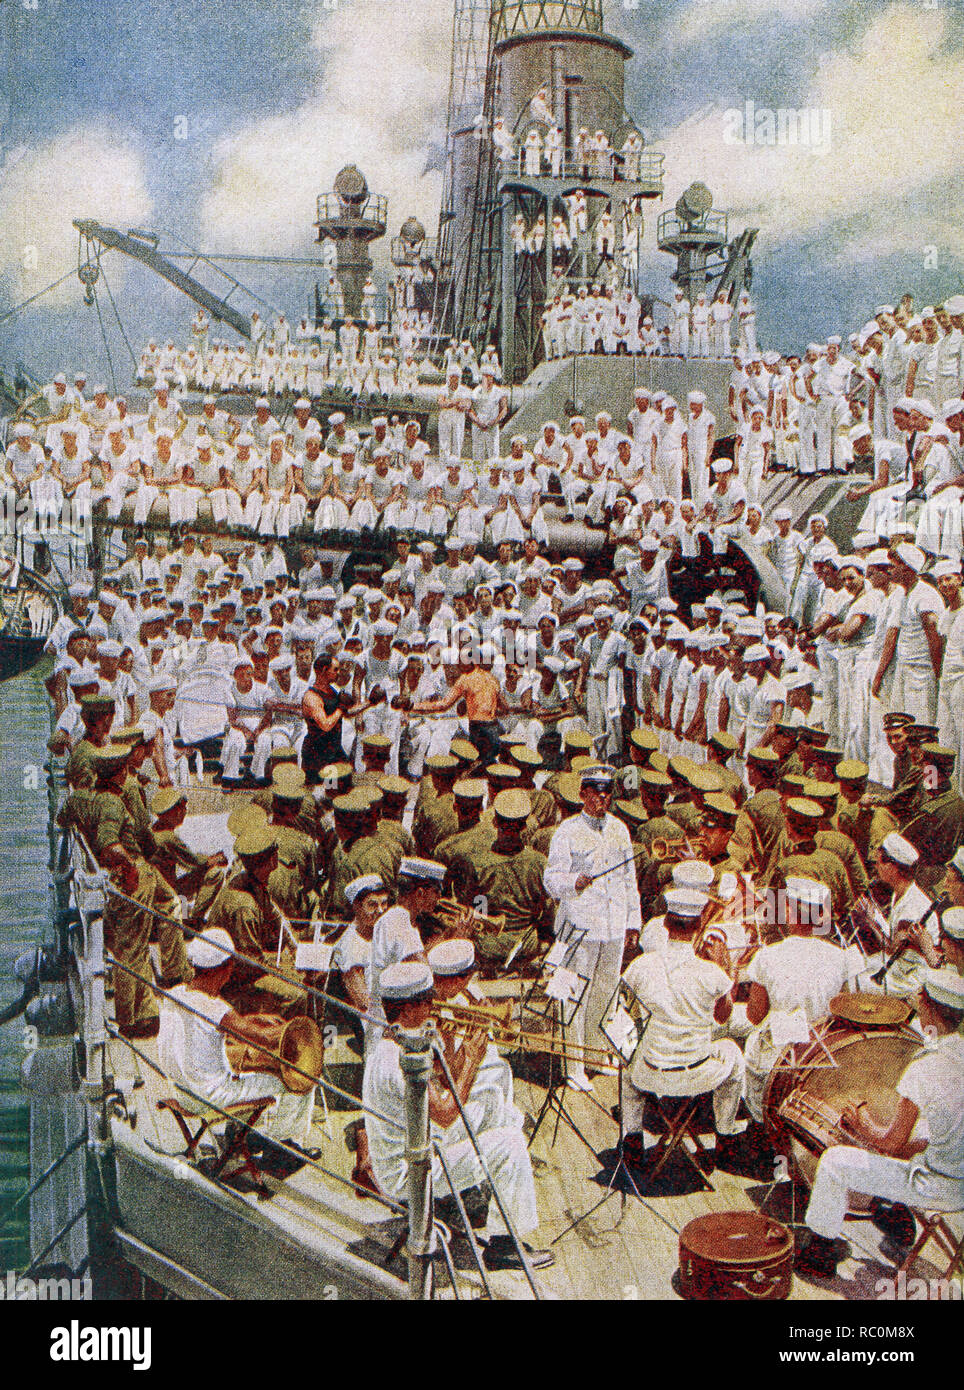 "The caption reads: ""Pack up your troubles in your old sea bag. All work and no play was not permitted to make the American sailor a dull boy."" The image dates to 1922 and shows American military on a carrier at sea in World War I. In the foreground a band with a conductor. In the middle is a boxing matched watched by a number of sailors. The others are more sailors and crew watching the events. Stock Photo"